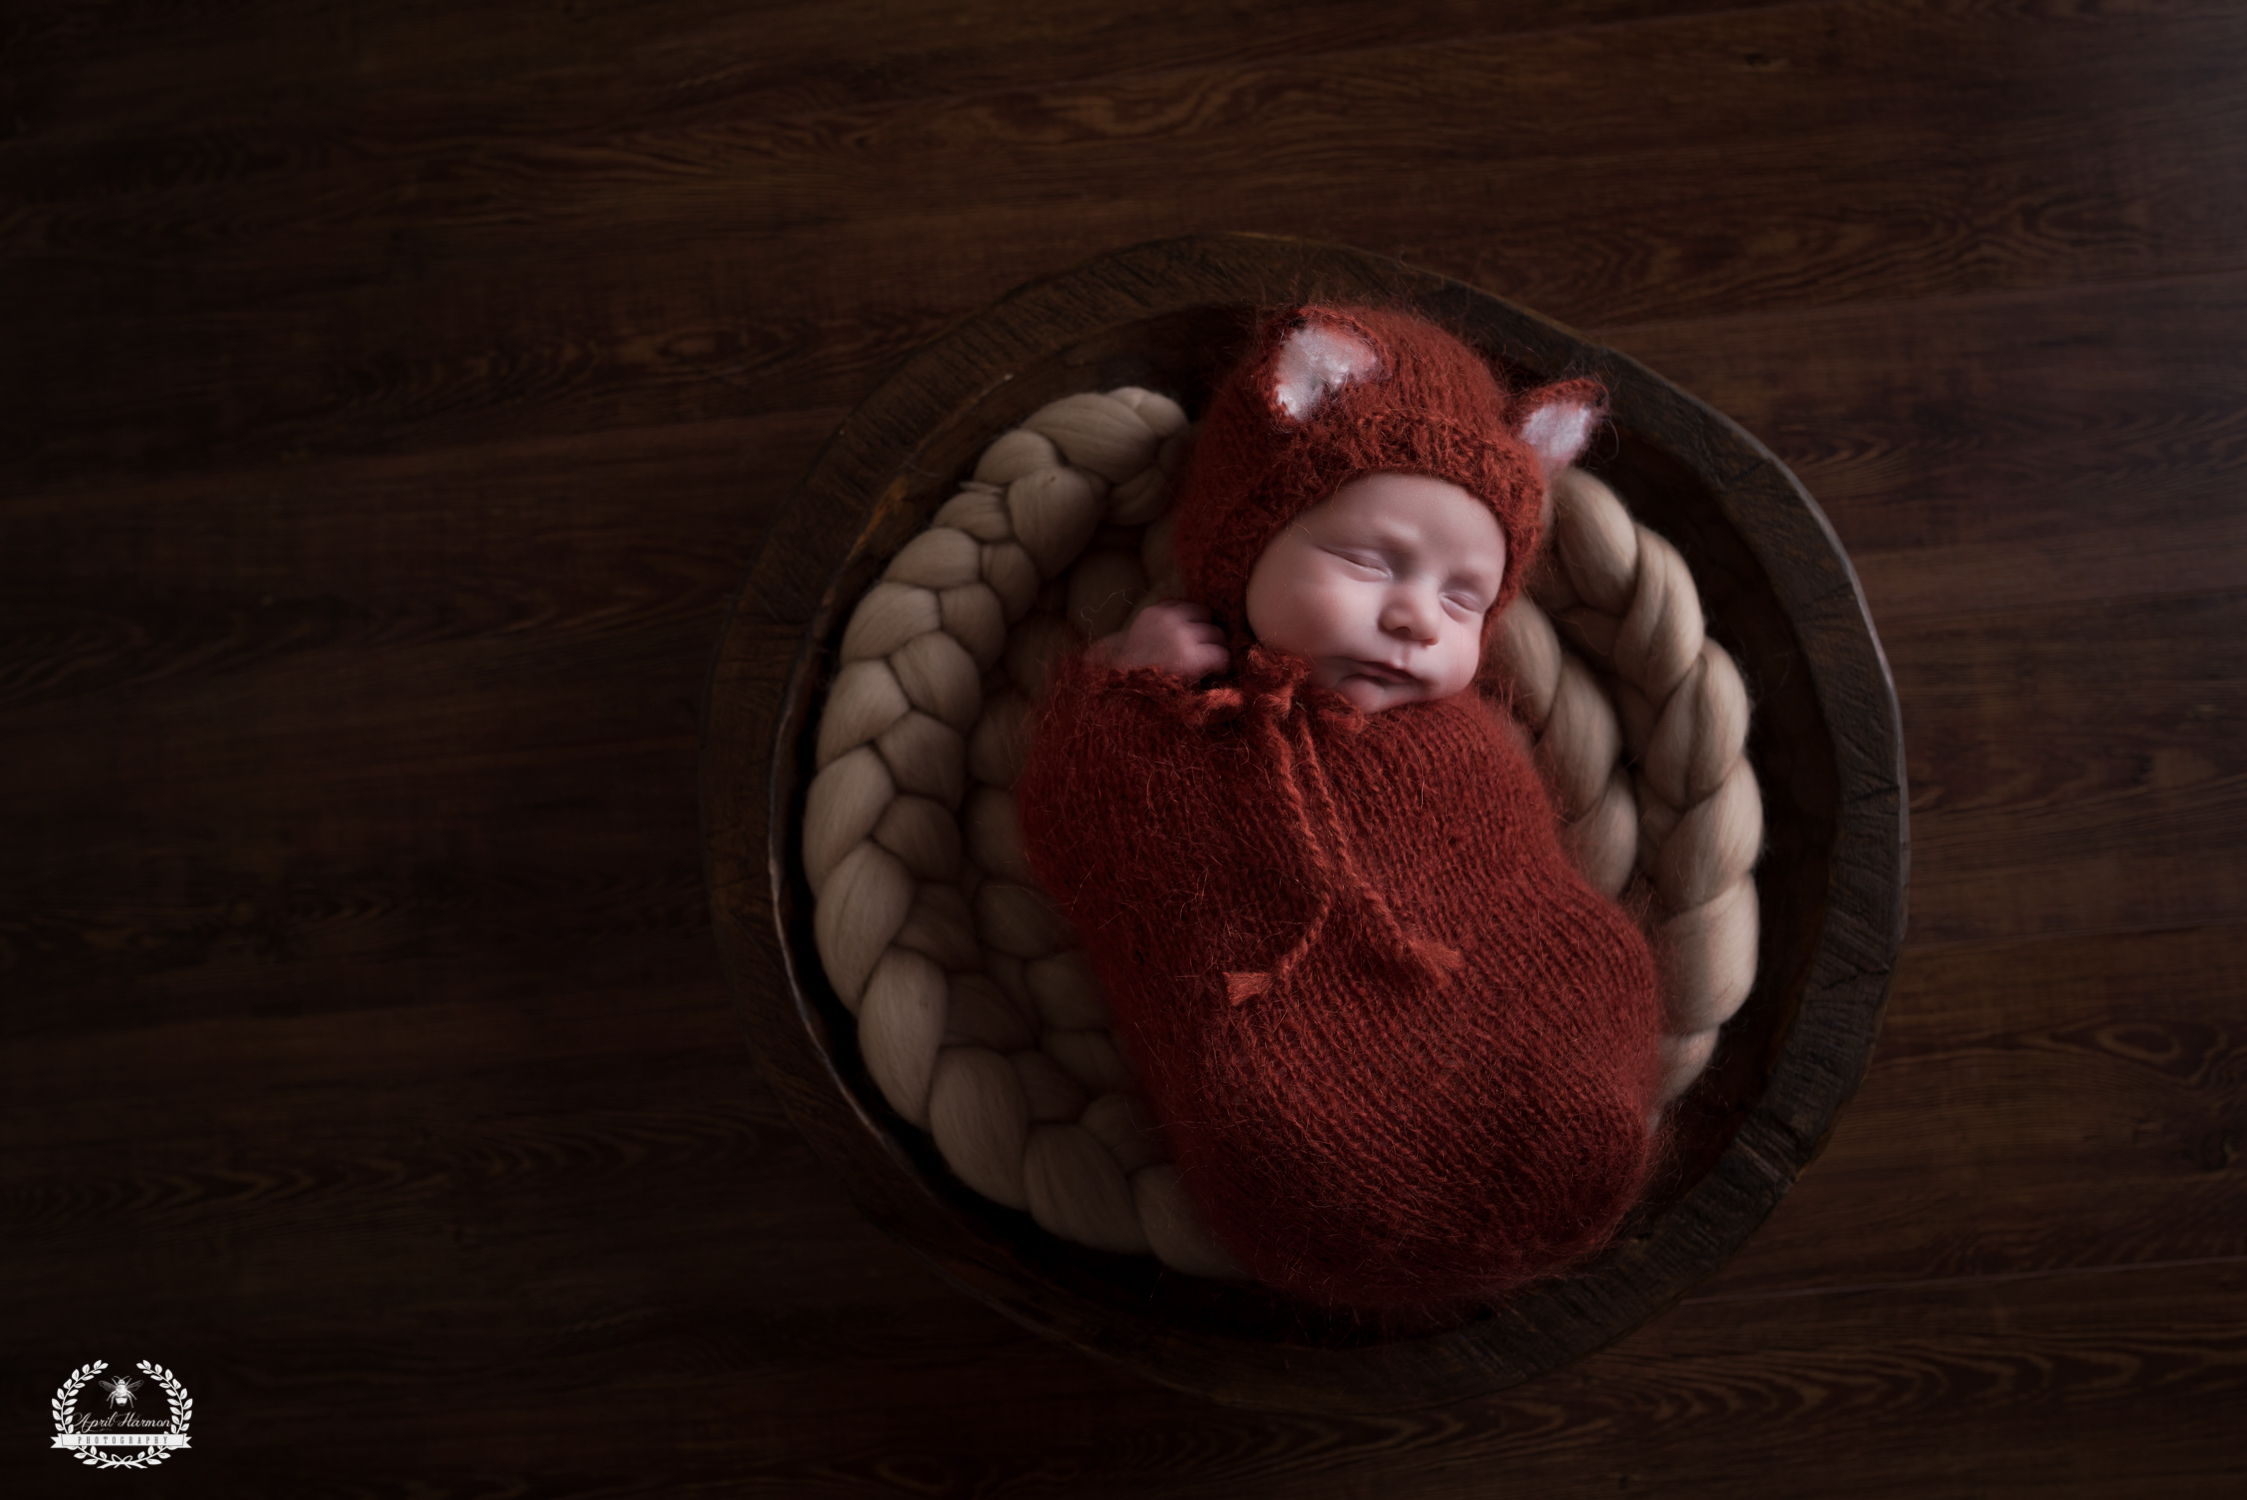 southwest-kansas-newborn-photography42.jpg